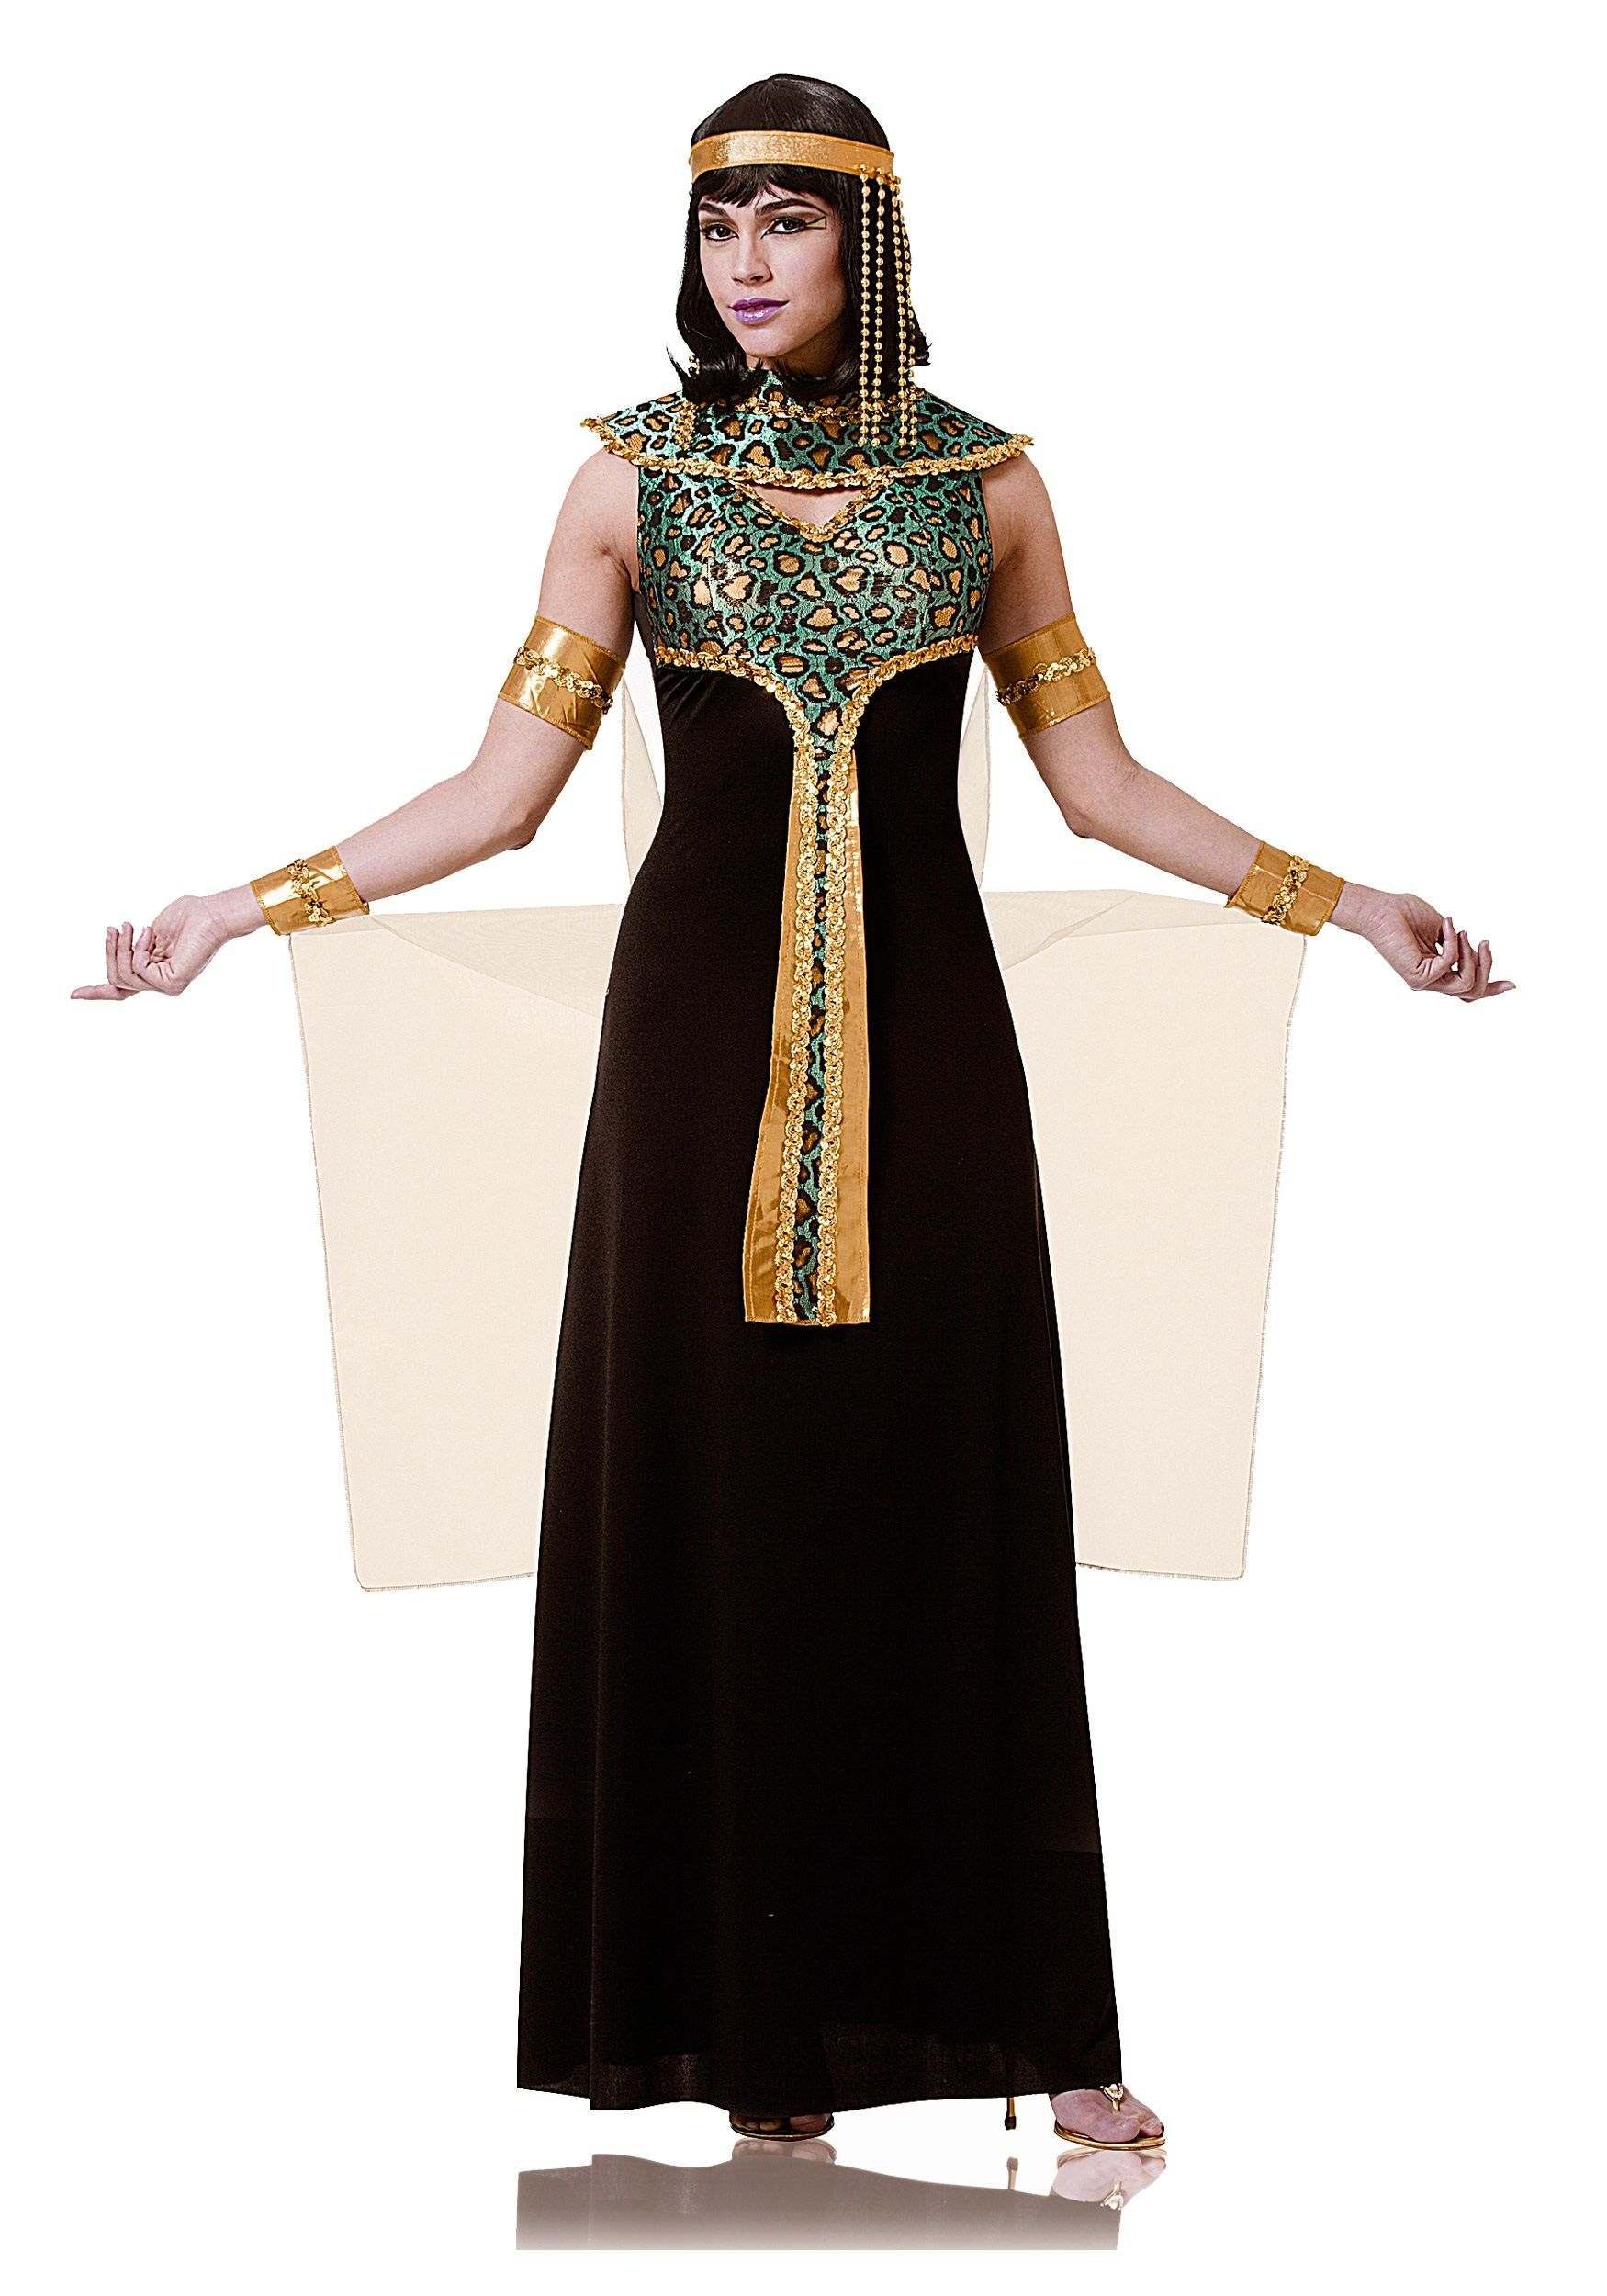 Adult Black and Teal Cleopatra Costume | Costumes and ...